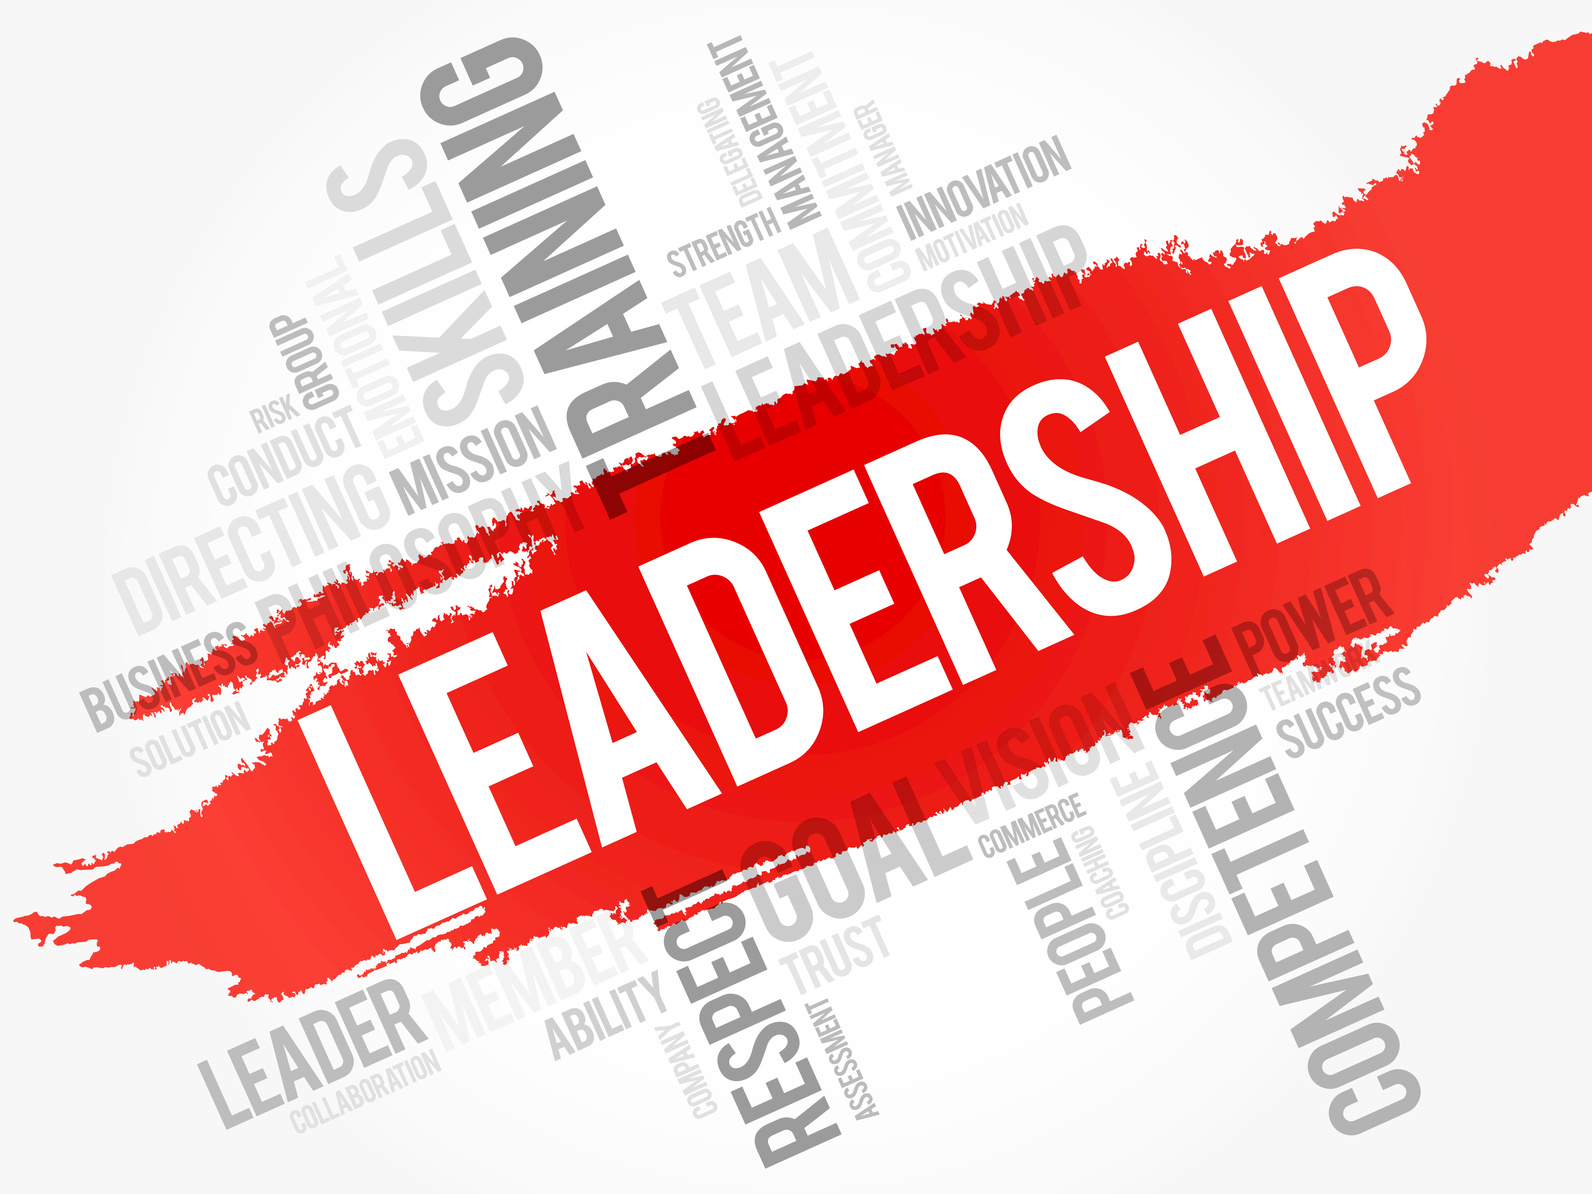 Leadership communication skills assessment | Grace Judson |Leadership Communication Skills